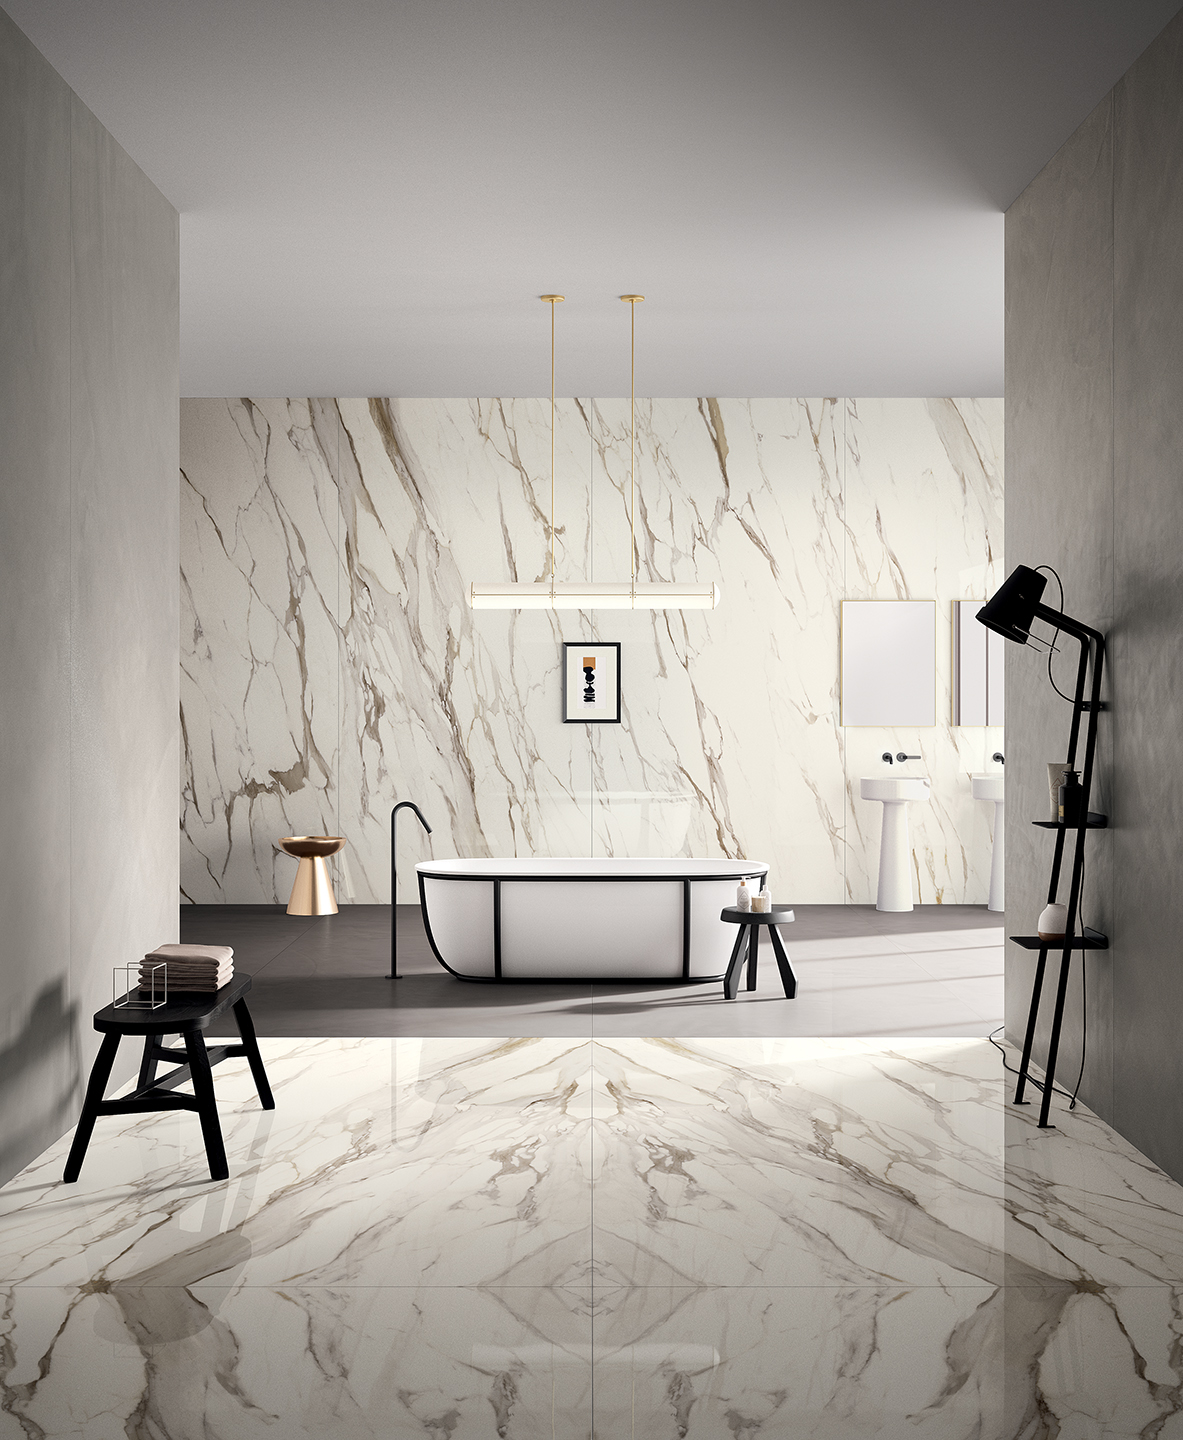 Calacatta Gold Slab Stoneware Suppliers Extra Large Porcelain Tiles